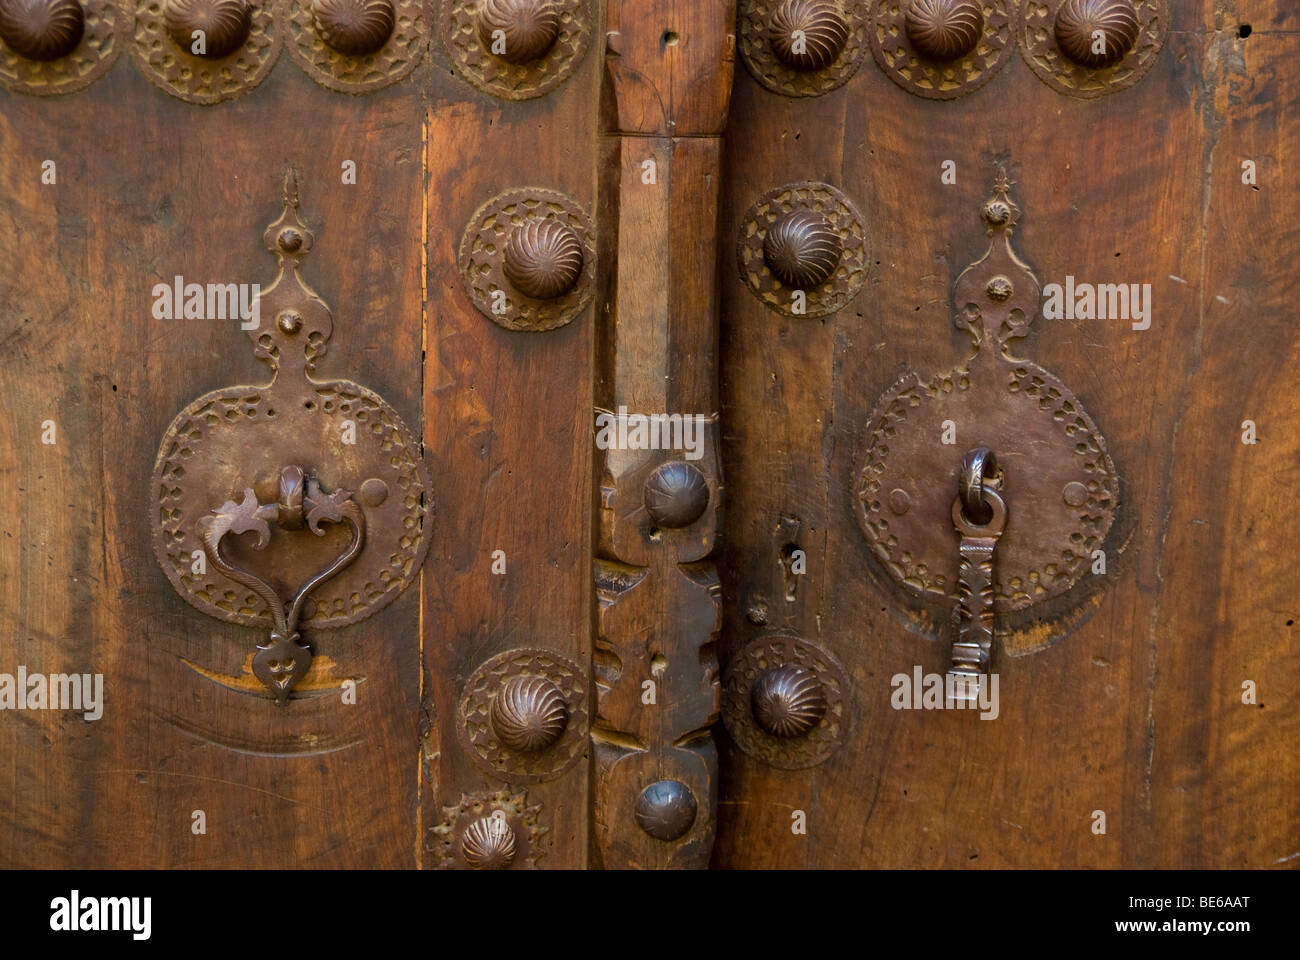 doorknockers, traditional house, Kashan, Iran - Stock Image